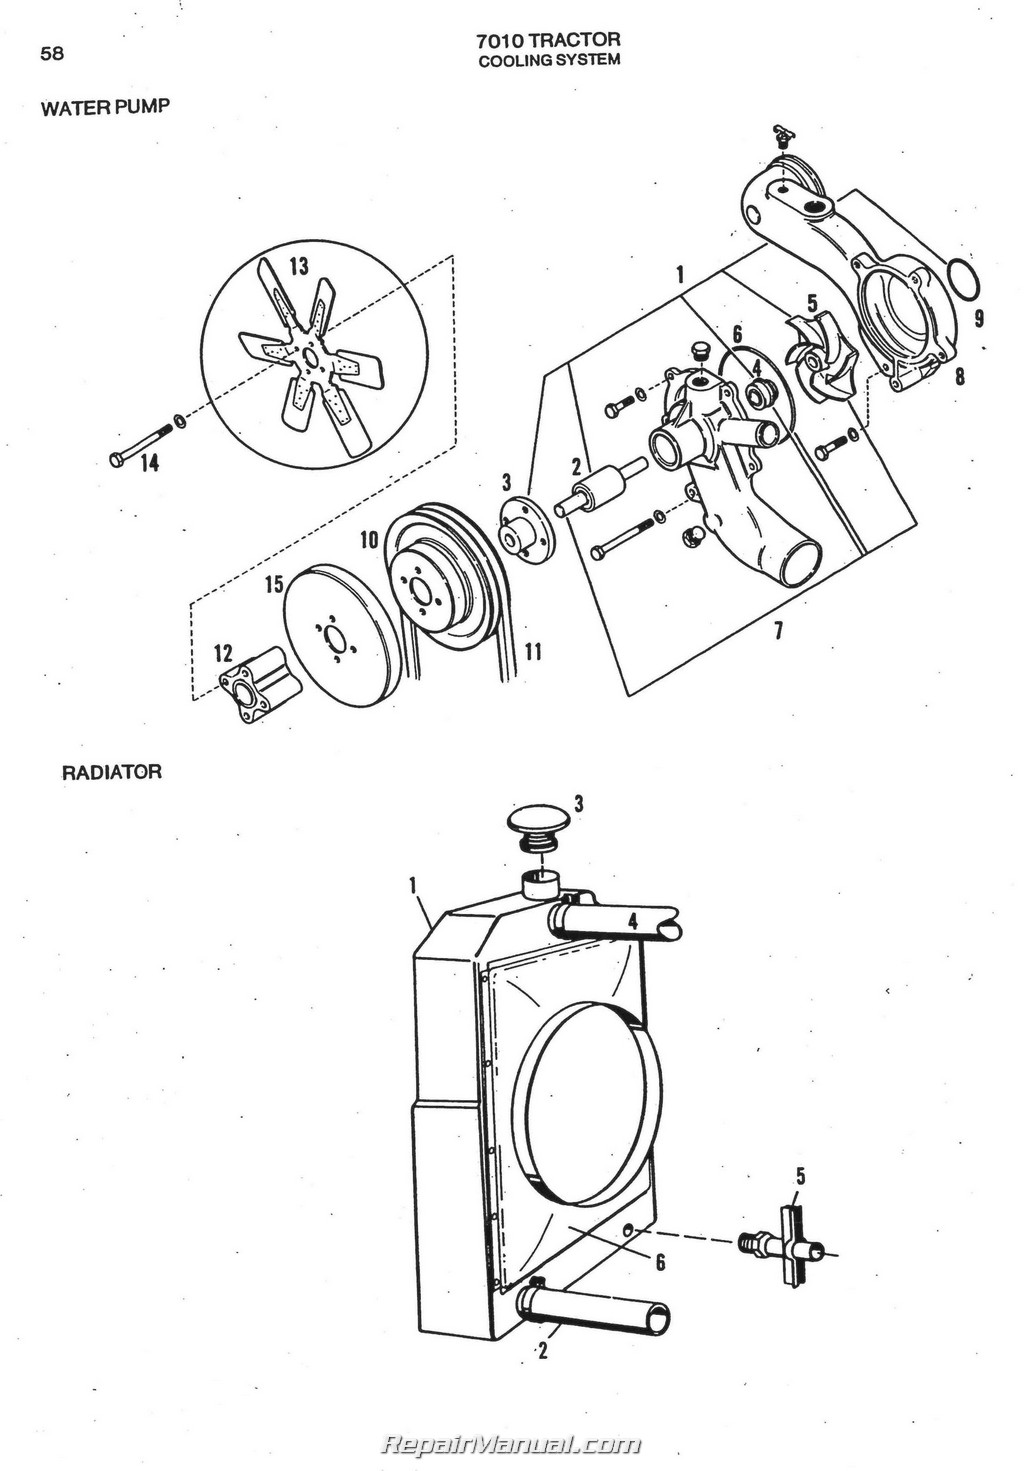 Tractor Clutch Diagram as well Gm Forklift Engines in addition Toro Reelmaster Wiring Diagram as well P 0900c15280051158 further John Deere 110 Backhoe Wiring Diagram. on ford engine serial number lookup